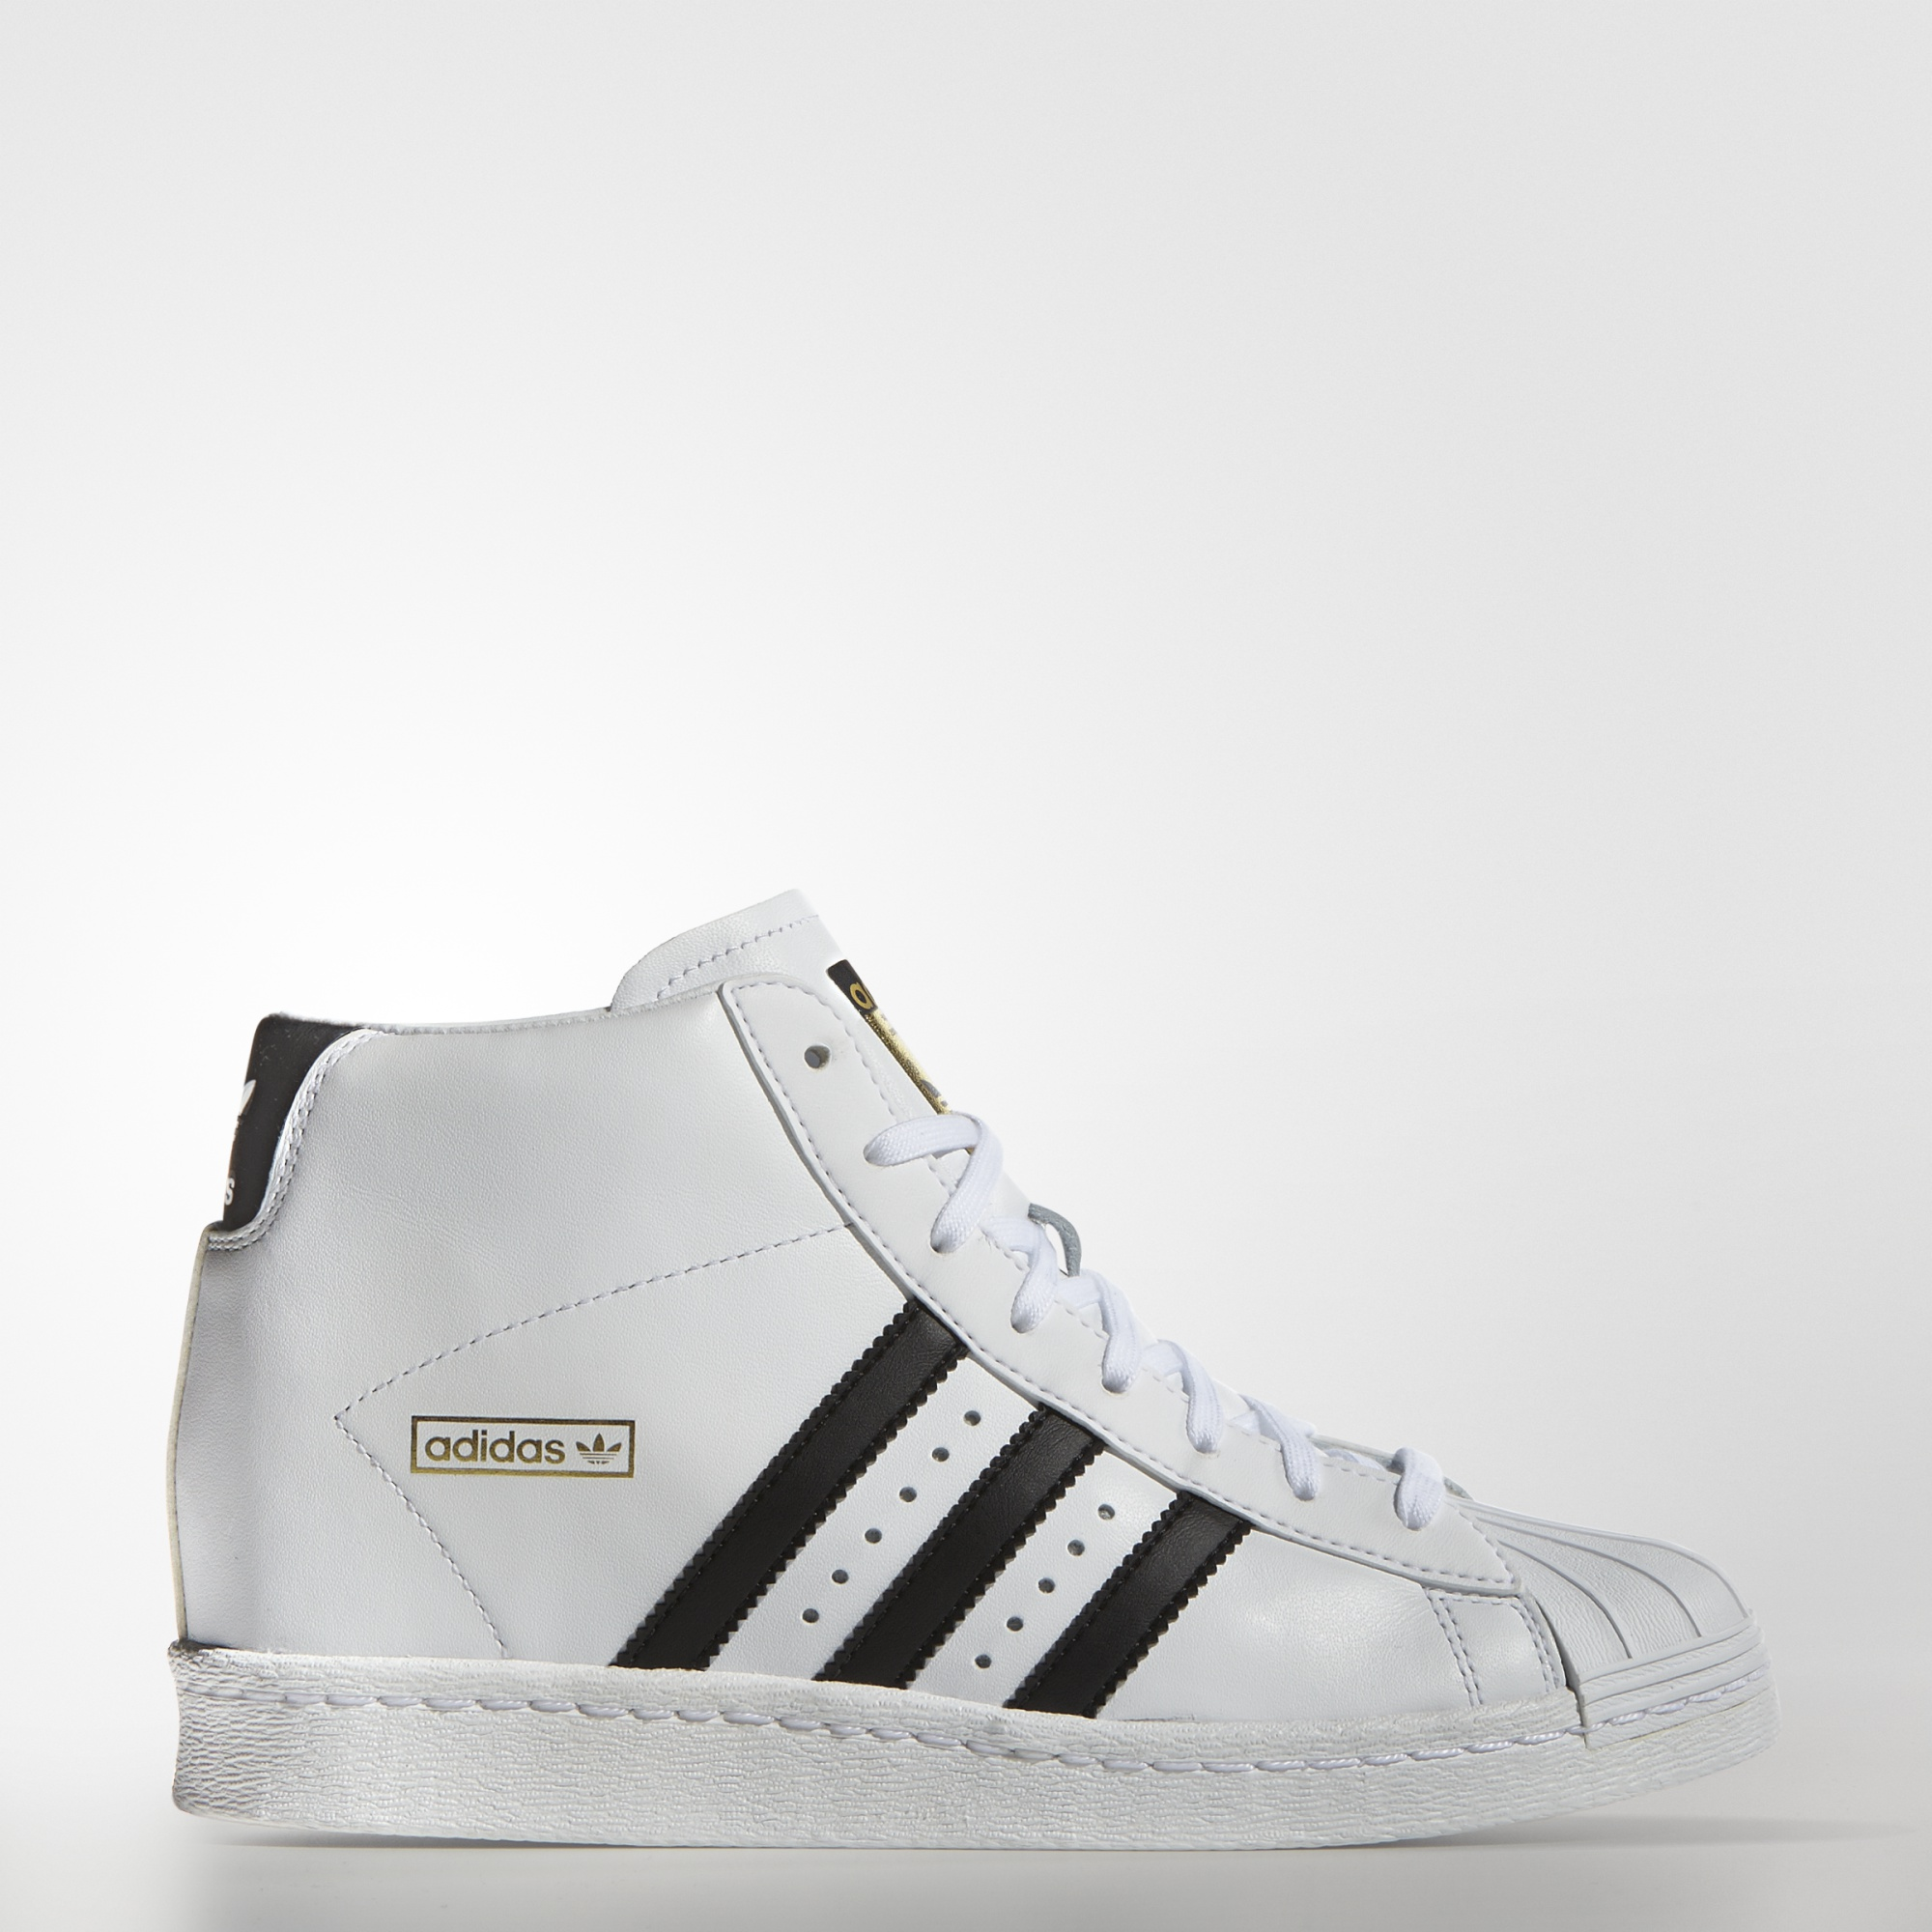 42d851e99 adidas Superstar Up Shoes - White